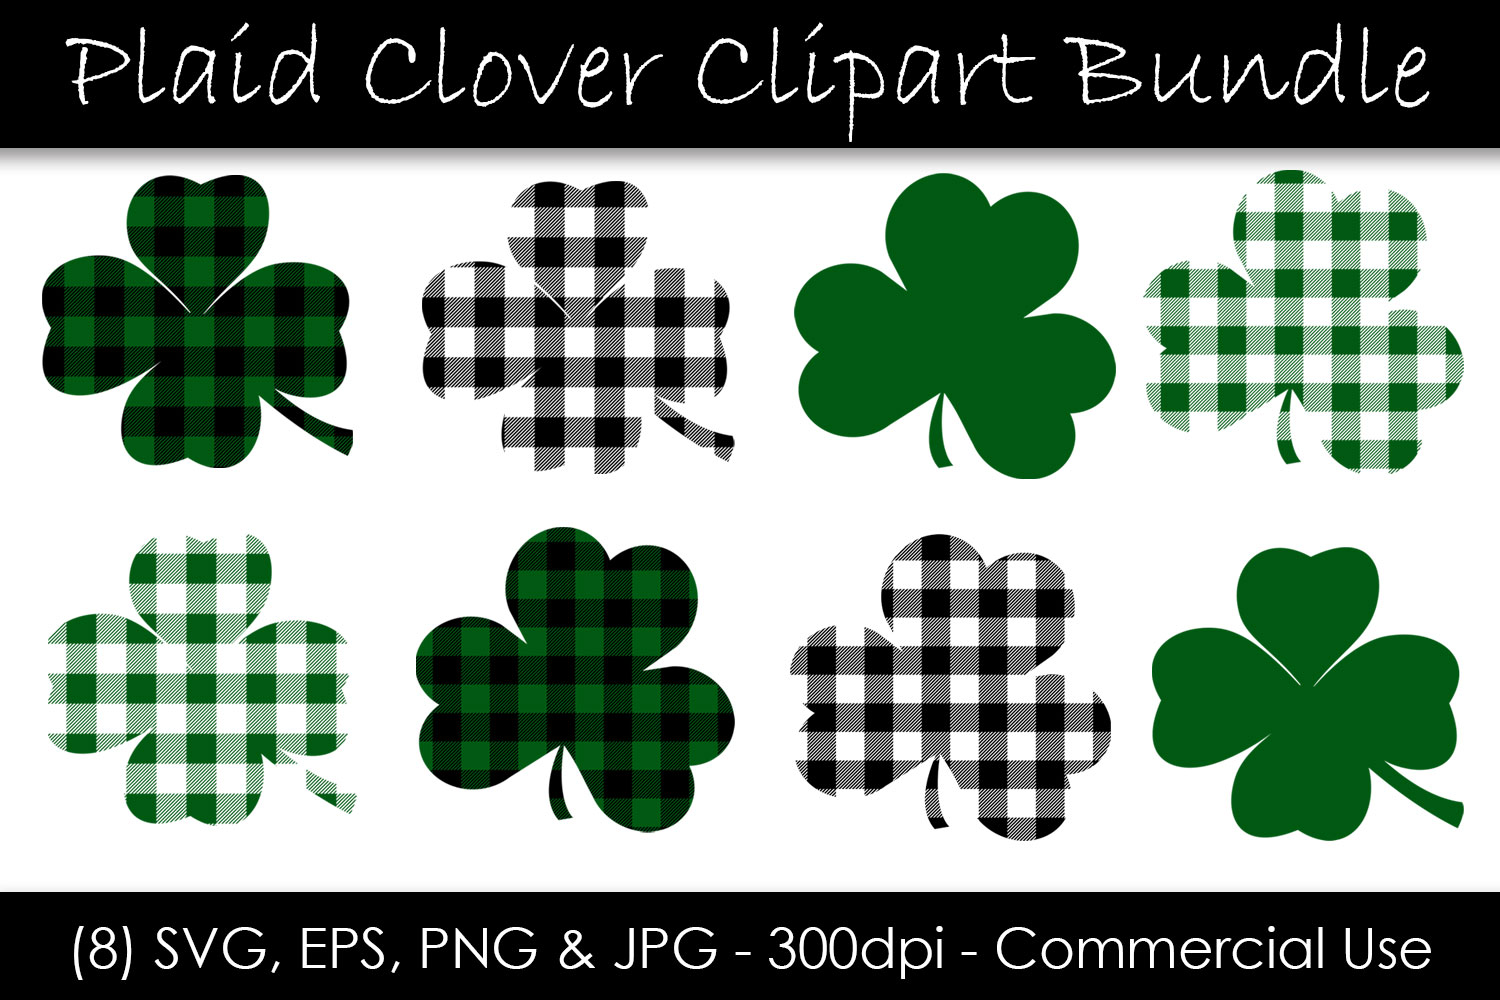 Download Free St Patrick S Day Shamrock Graphic By Gjsart Creative Fabrica for Cricut Explore, Silhouette and other cutting machines.